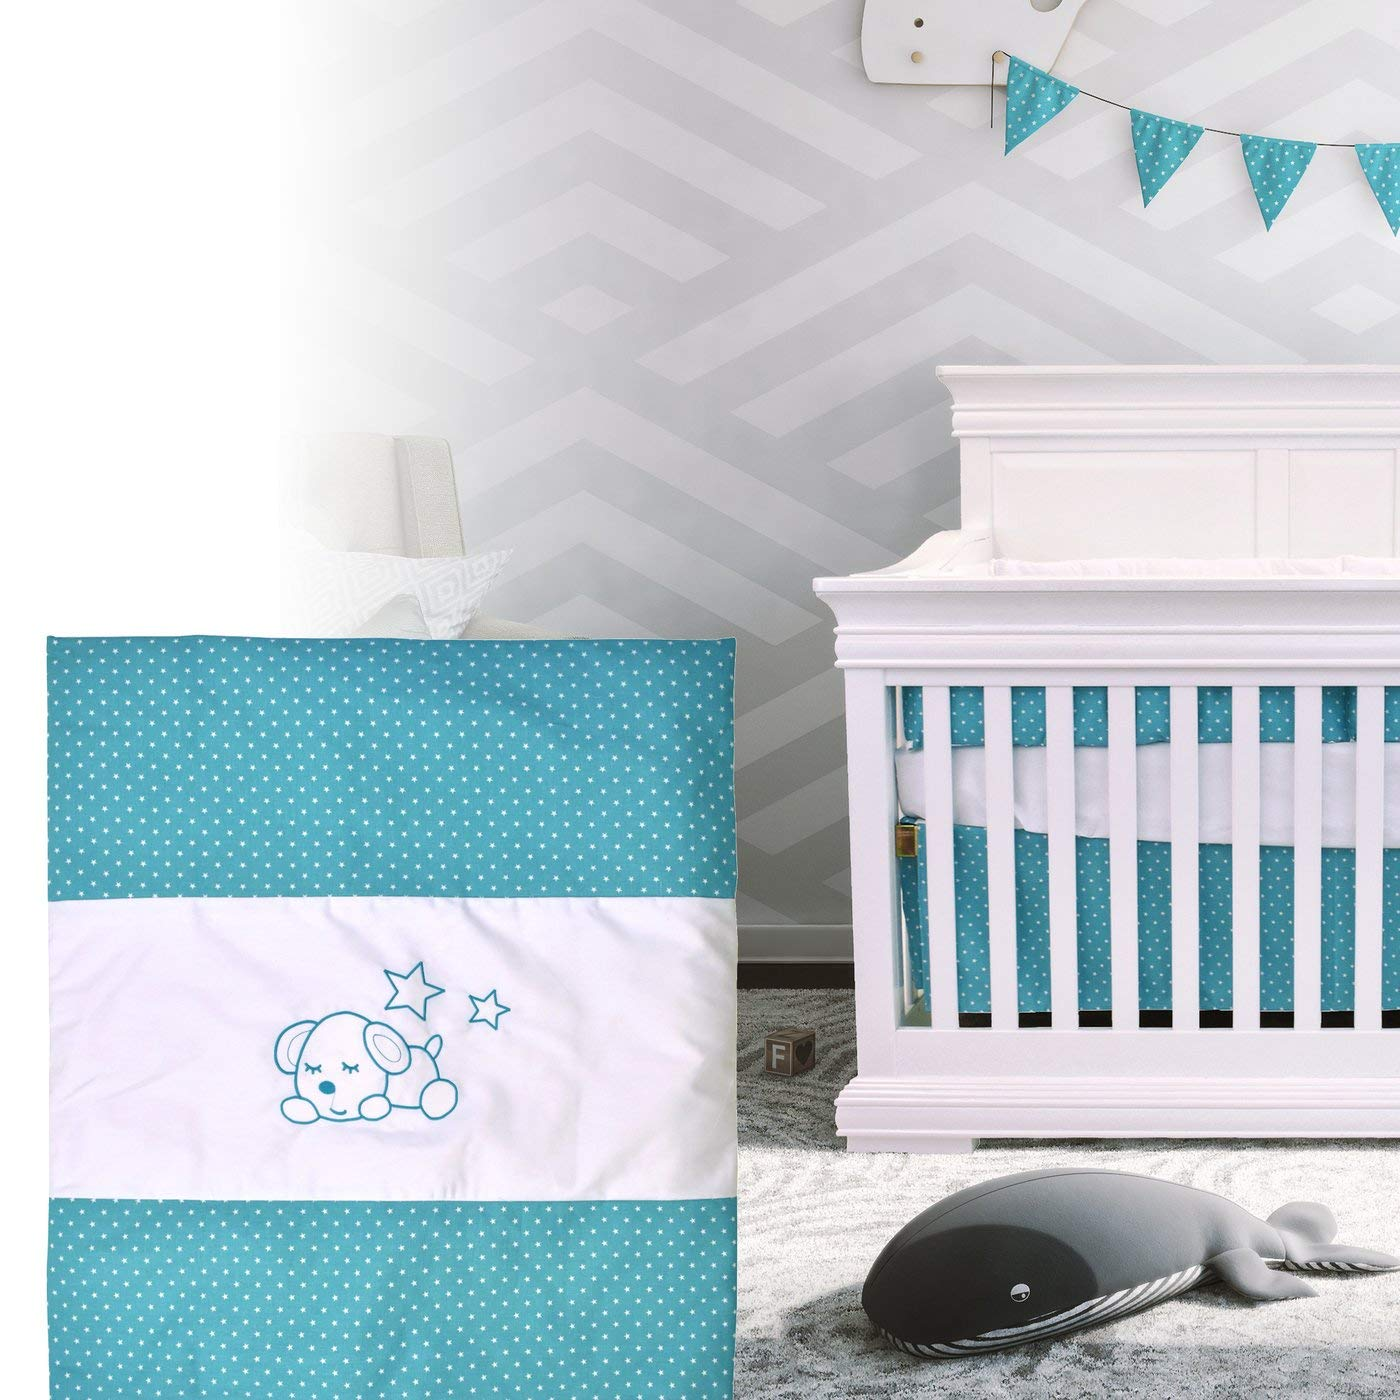 Bebelelo - 5 pieces bedding for baby - turquoise and white with a Sleeping Dog pattern - image 9 of 9